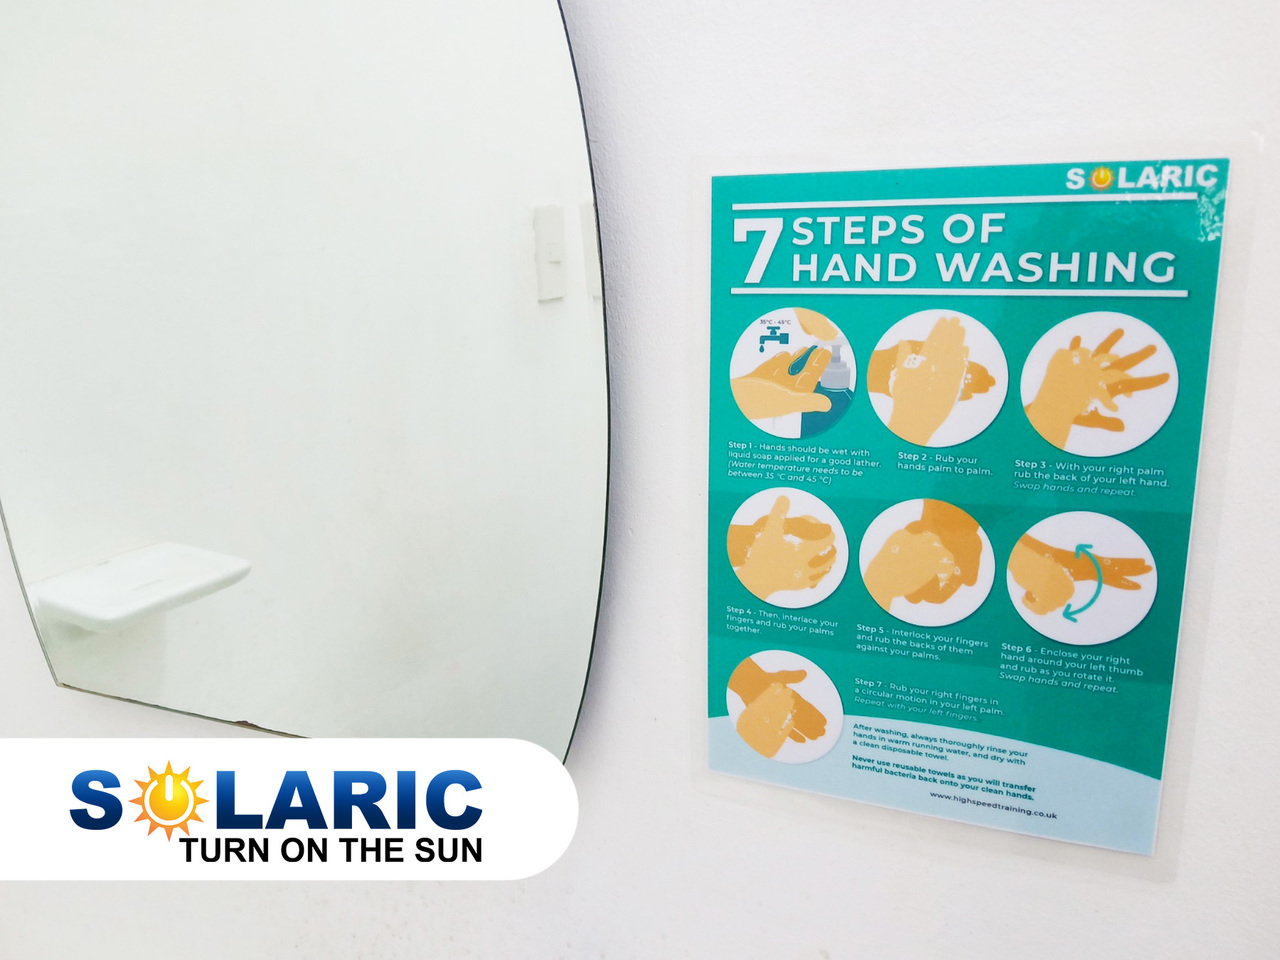 An infographic stuck to a bathroom wall on how to wash hands